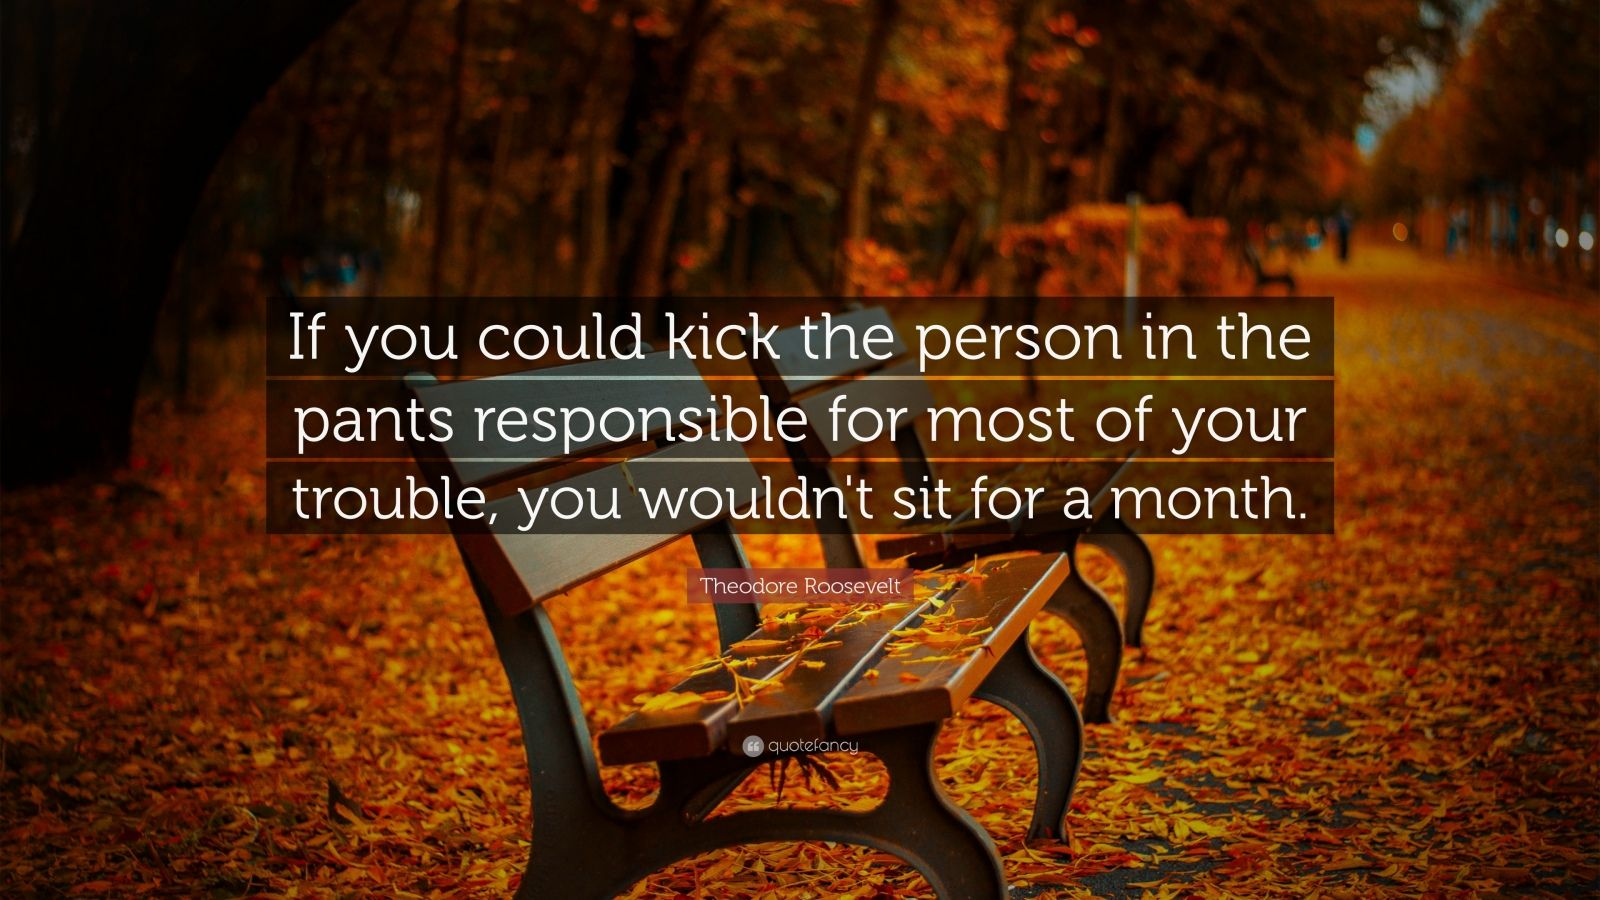 """Theodore Roosevelt Quote: """"If you could kick the person in the pants responsible for most of your trouble, you wouldn't sit for a month."""""""